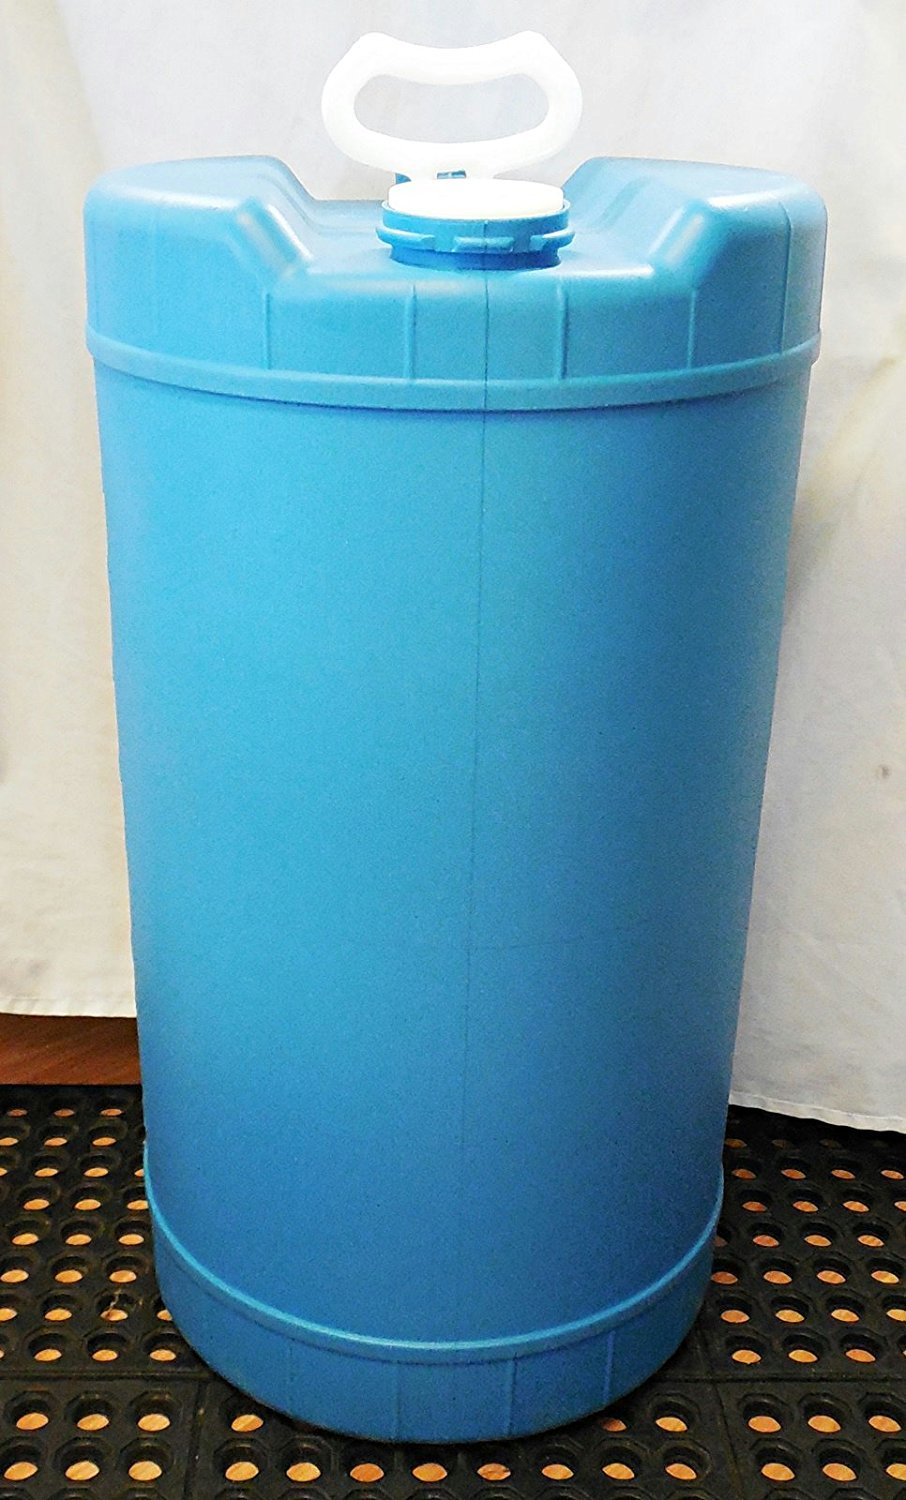 15 Gallon Plastic Water Barrel (Certified Redurbished) by BayTec